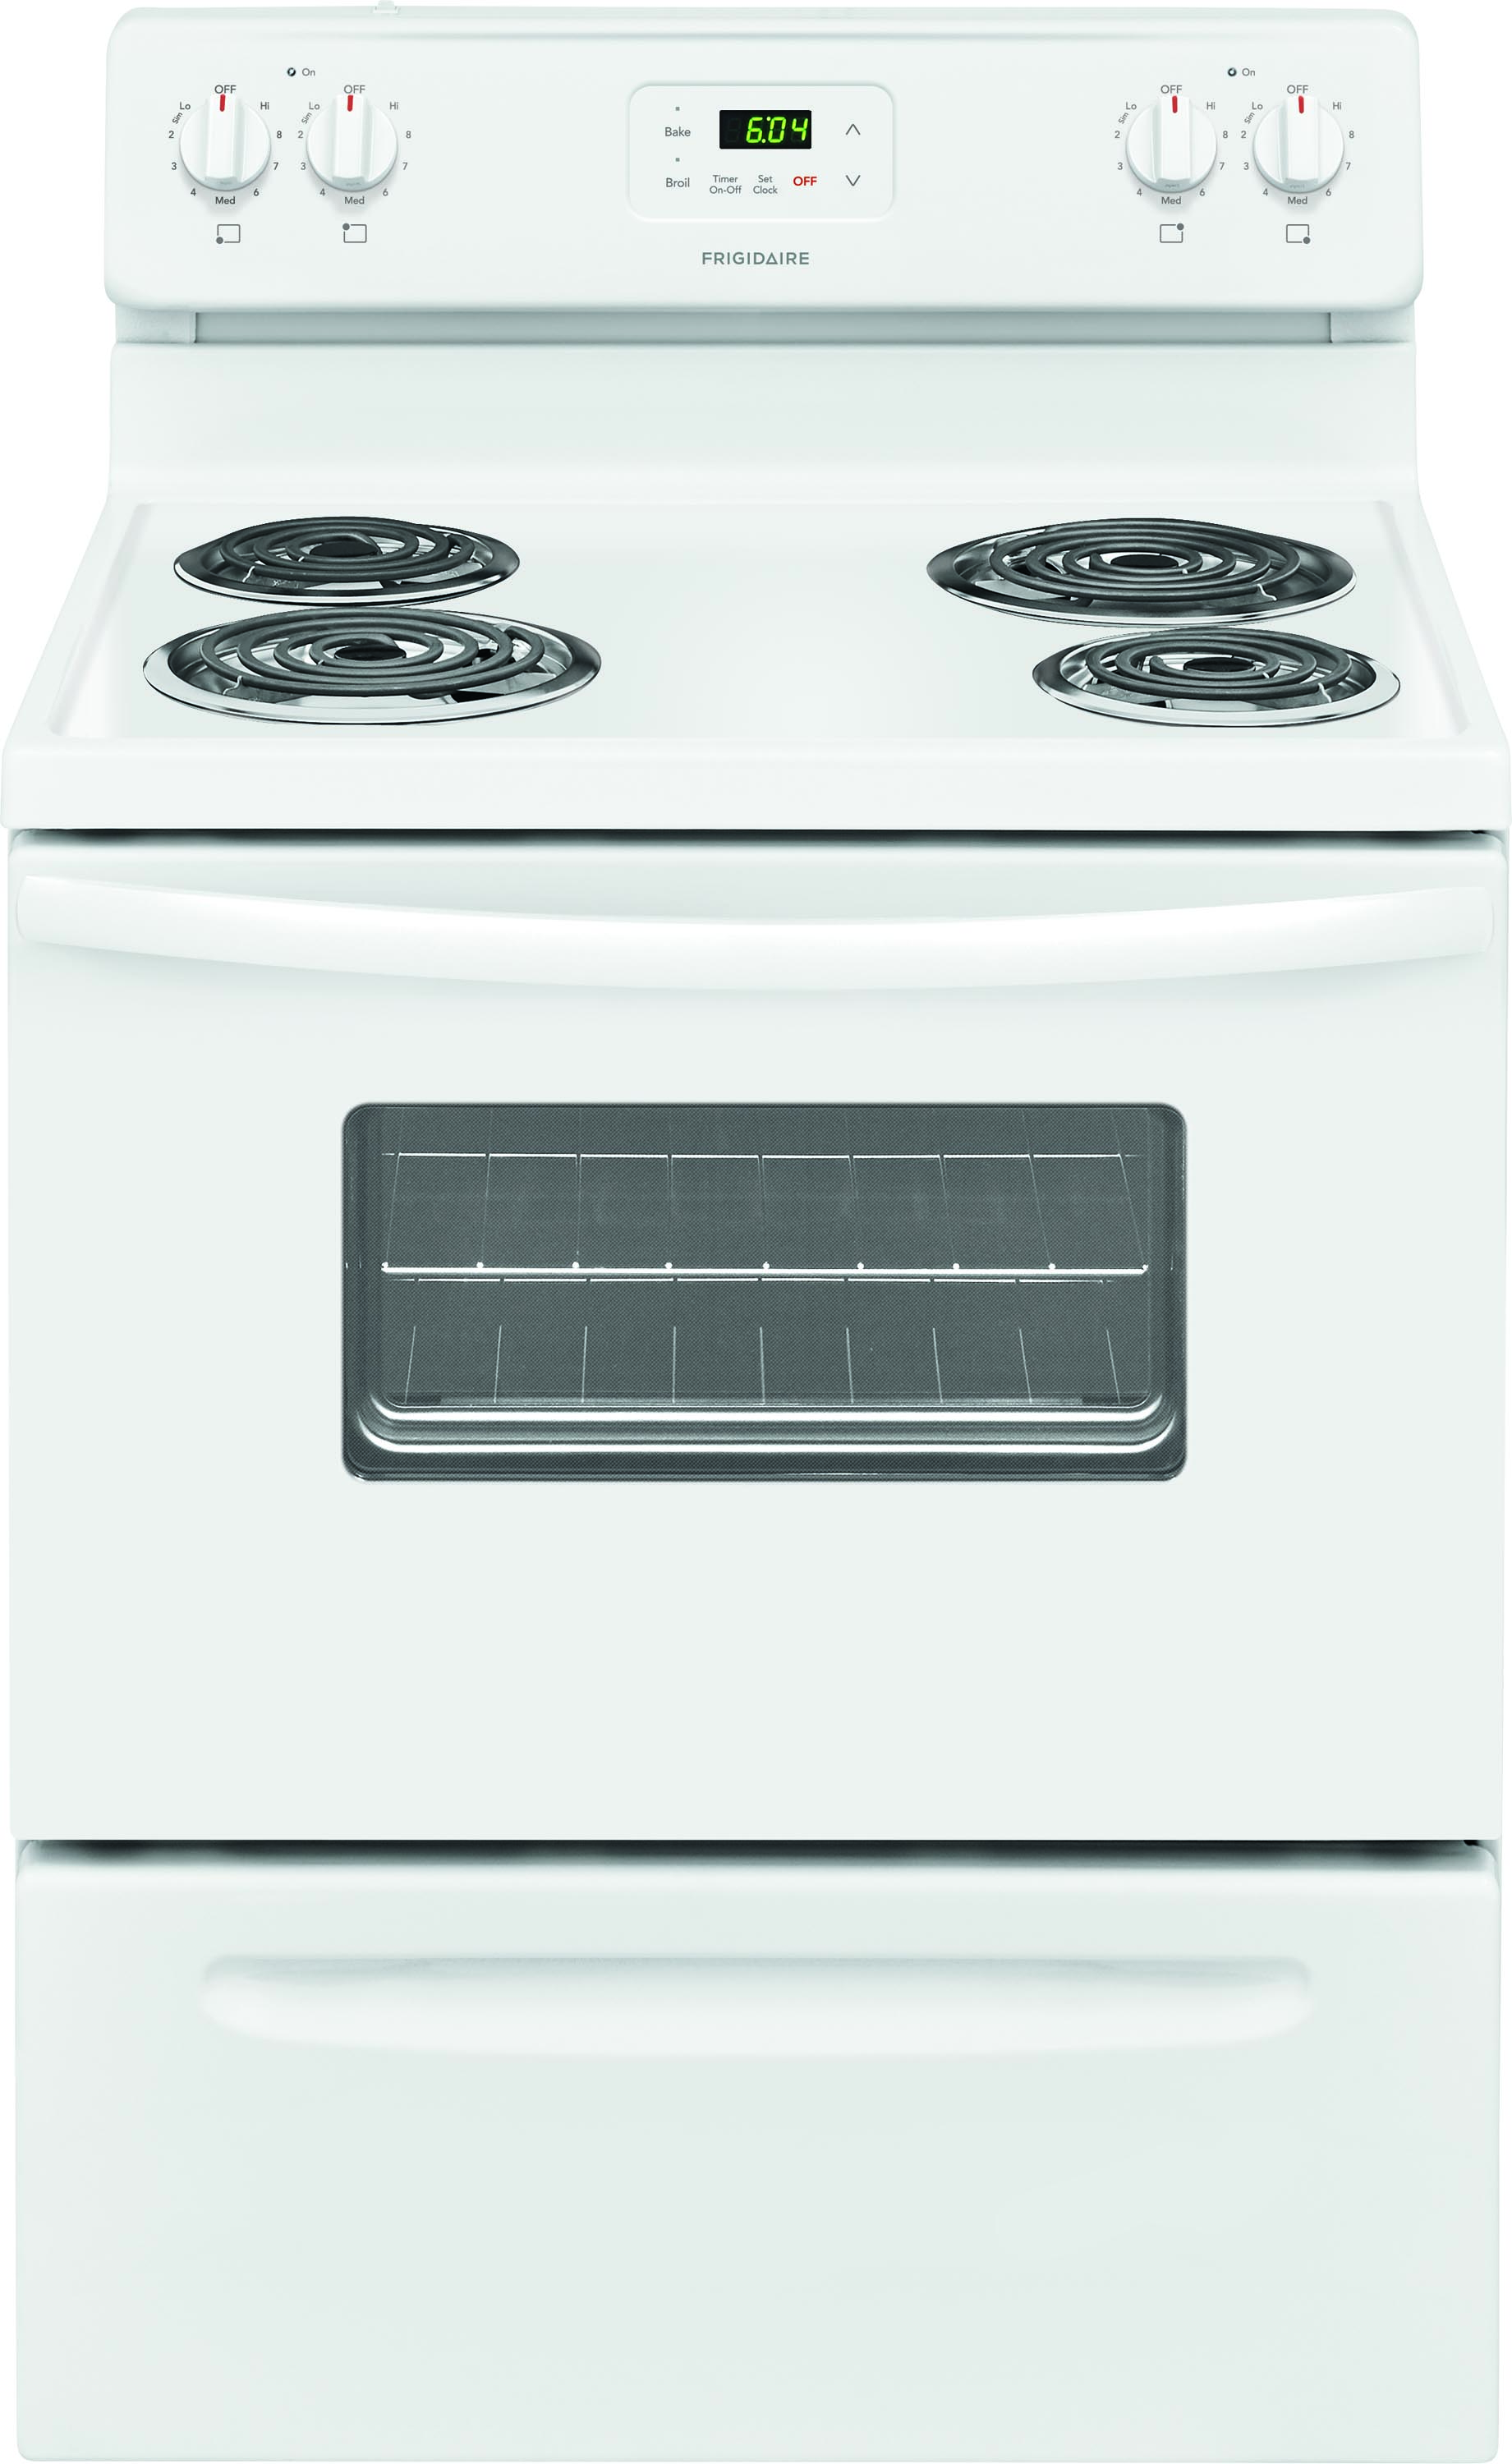 <D> FRIGIDAIRE FFEF3012TW 30 4 ELEMENT ELECTRIC F/S RANGE MANUAL CLEAN WHITE